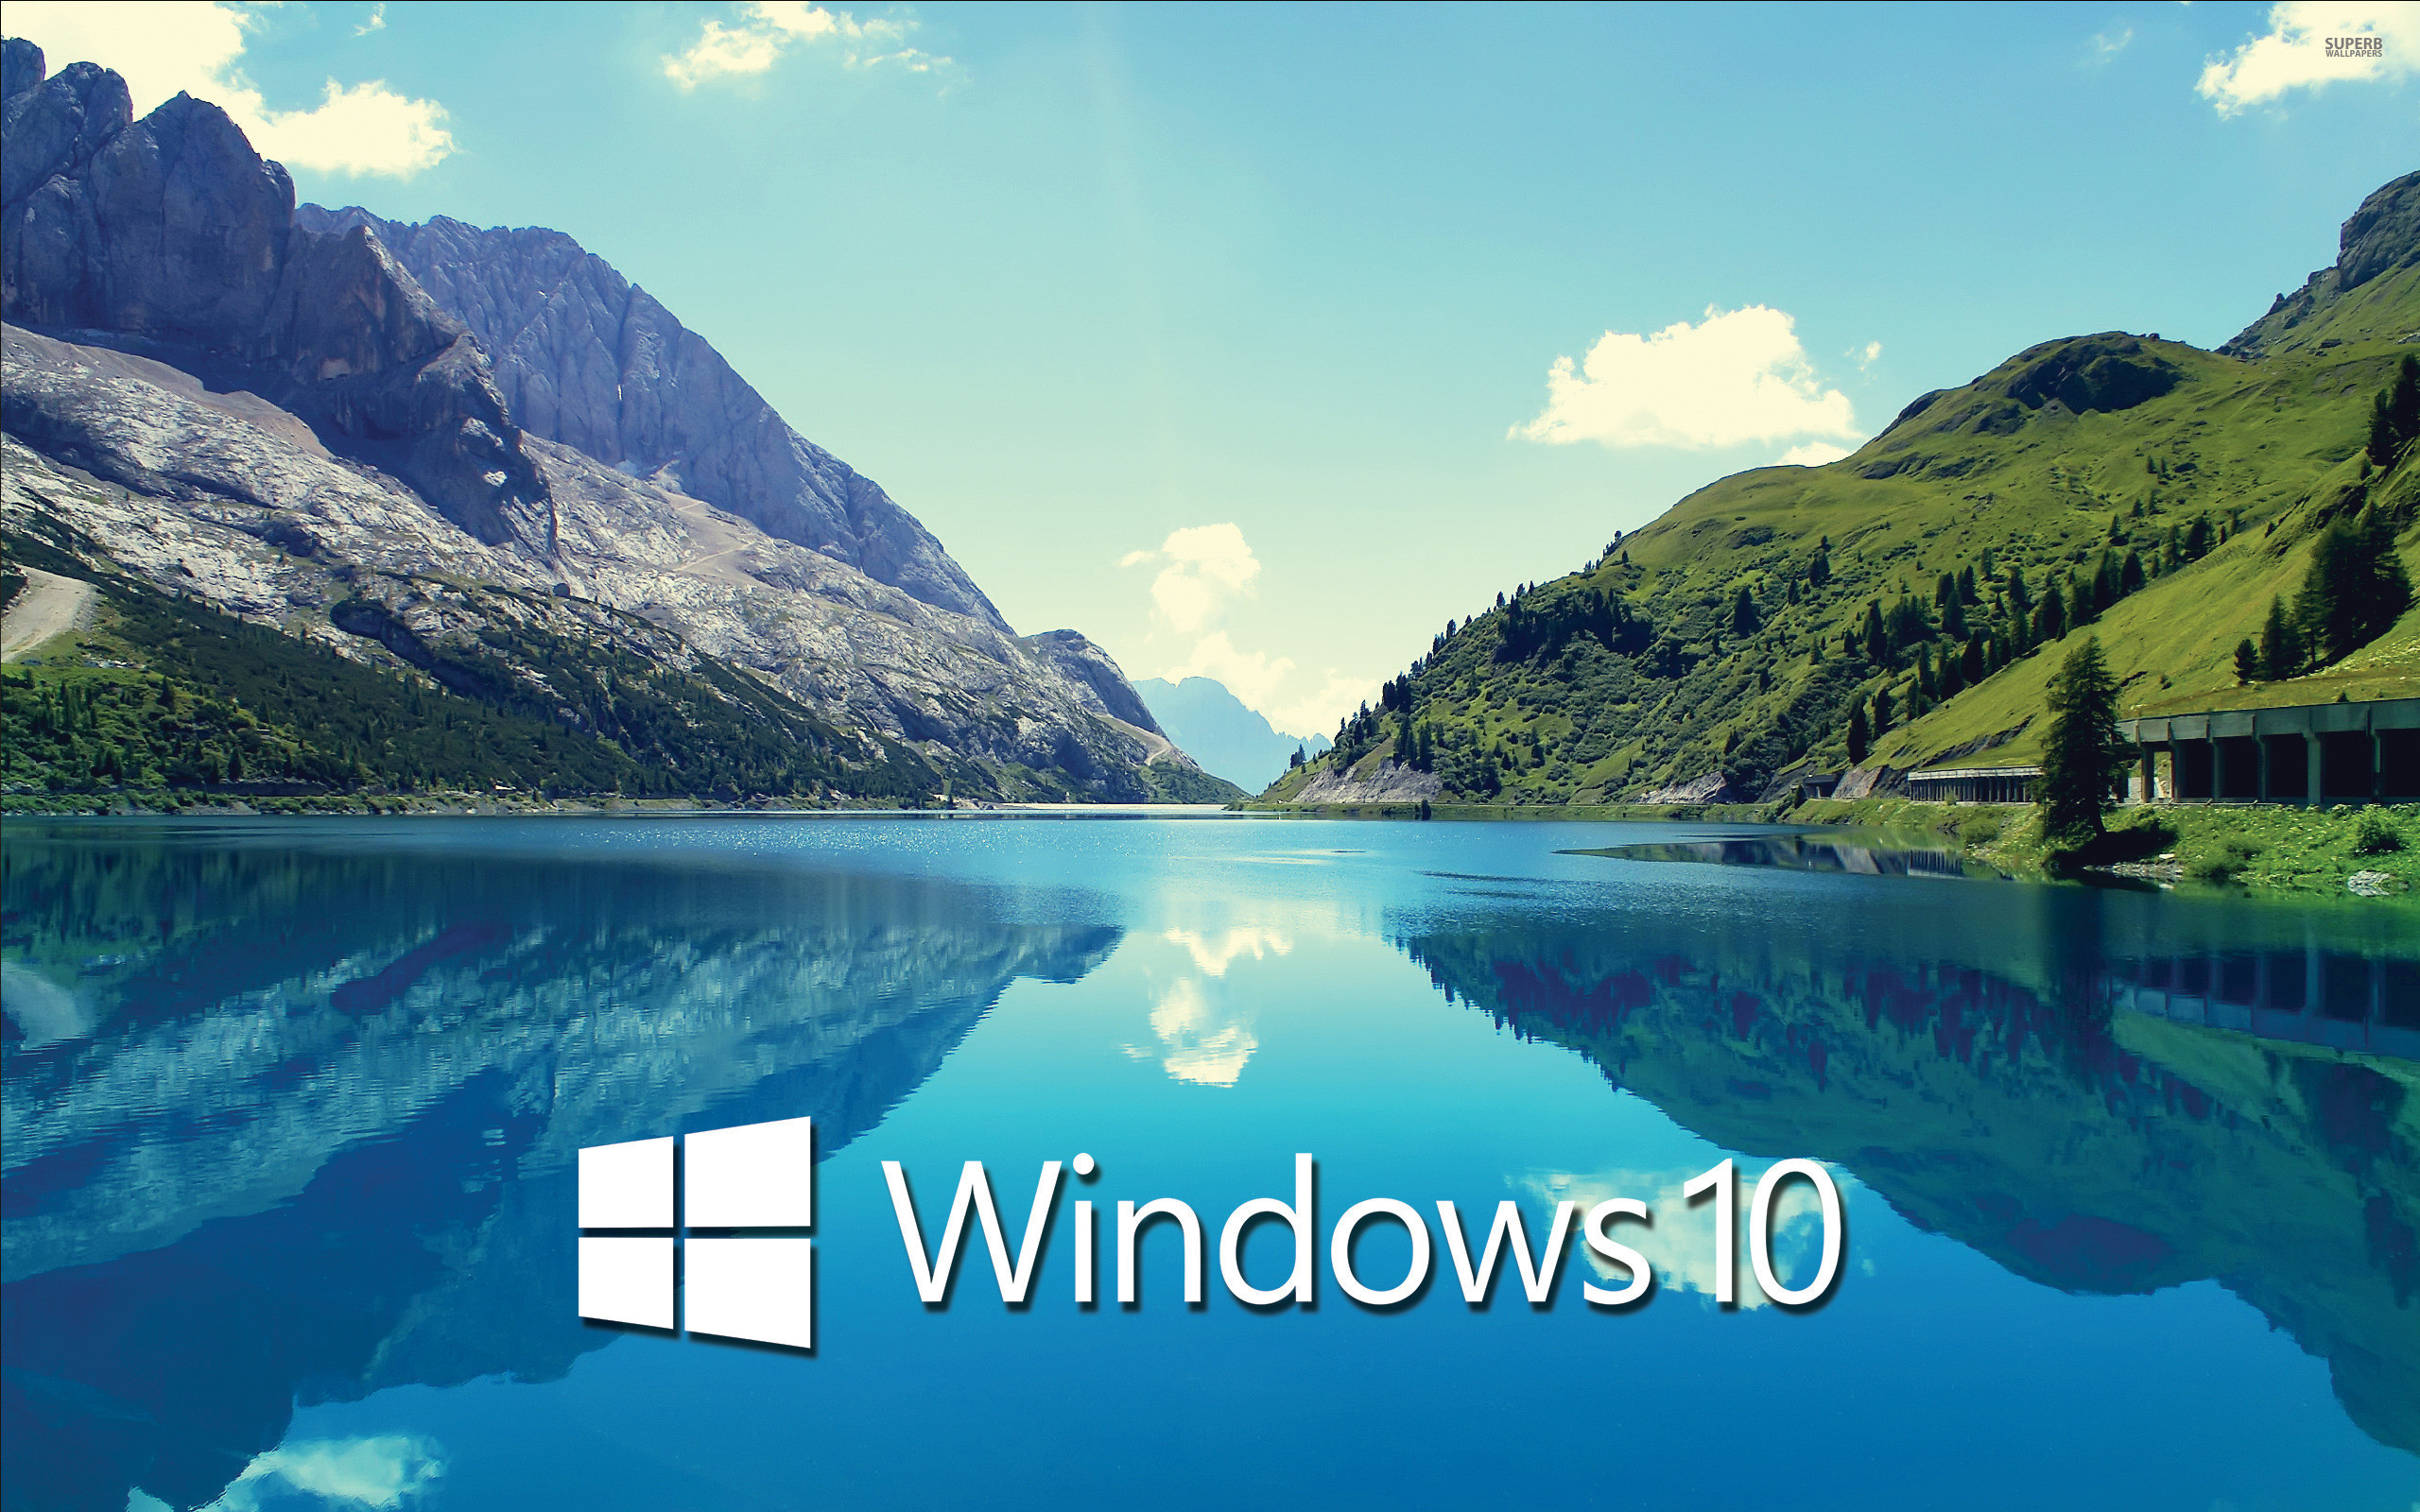 windows 10 hd wallpapers 1080p,natural landscape,body of water,nature,reflection,water resources